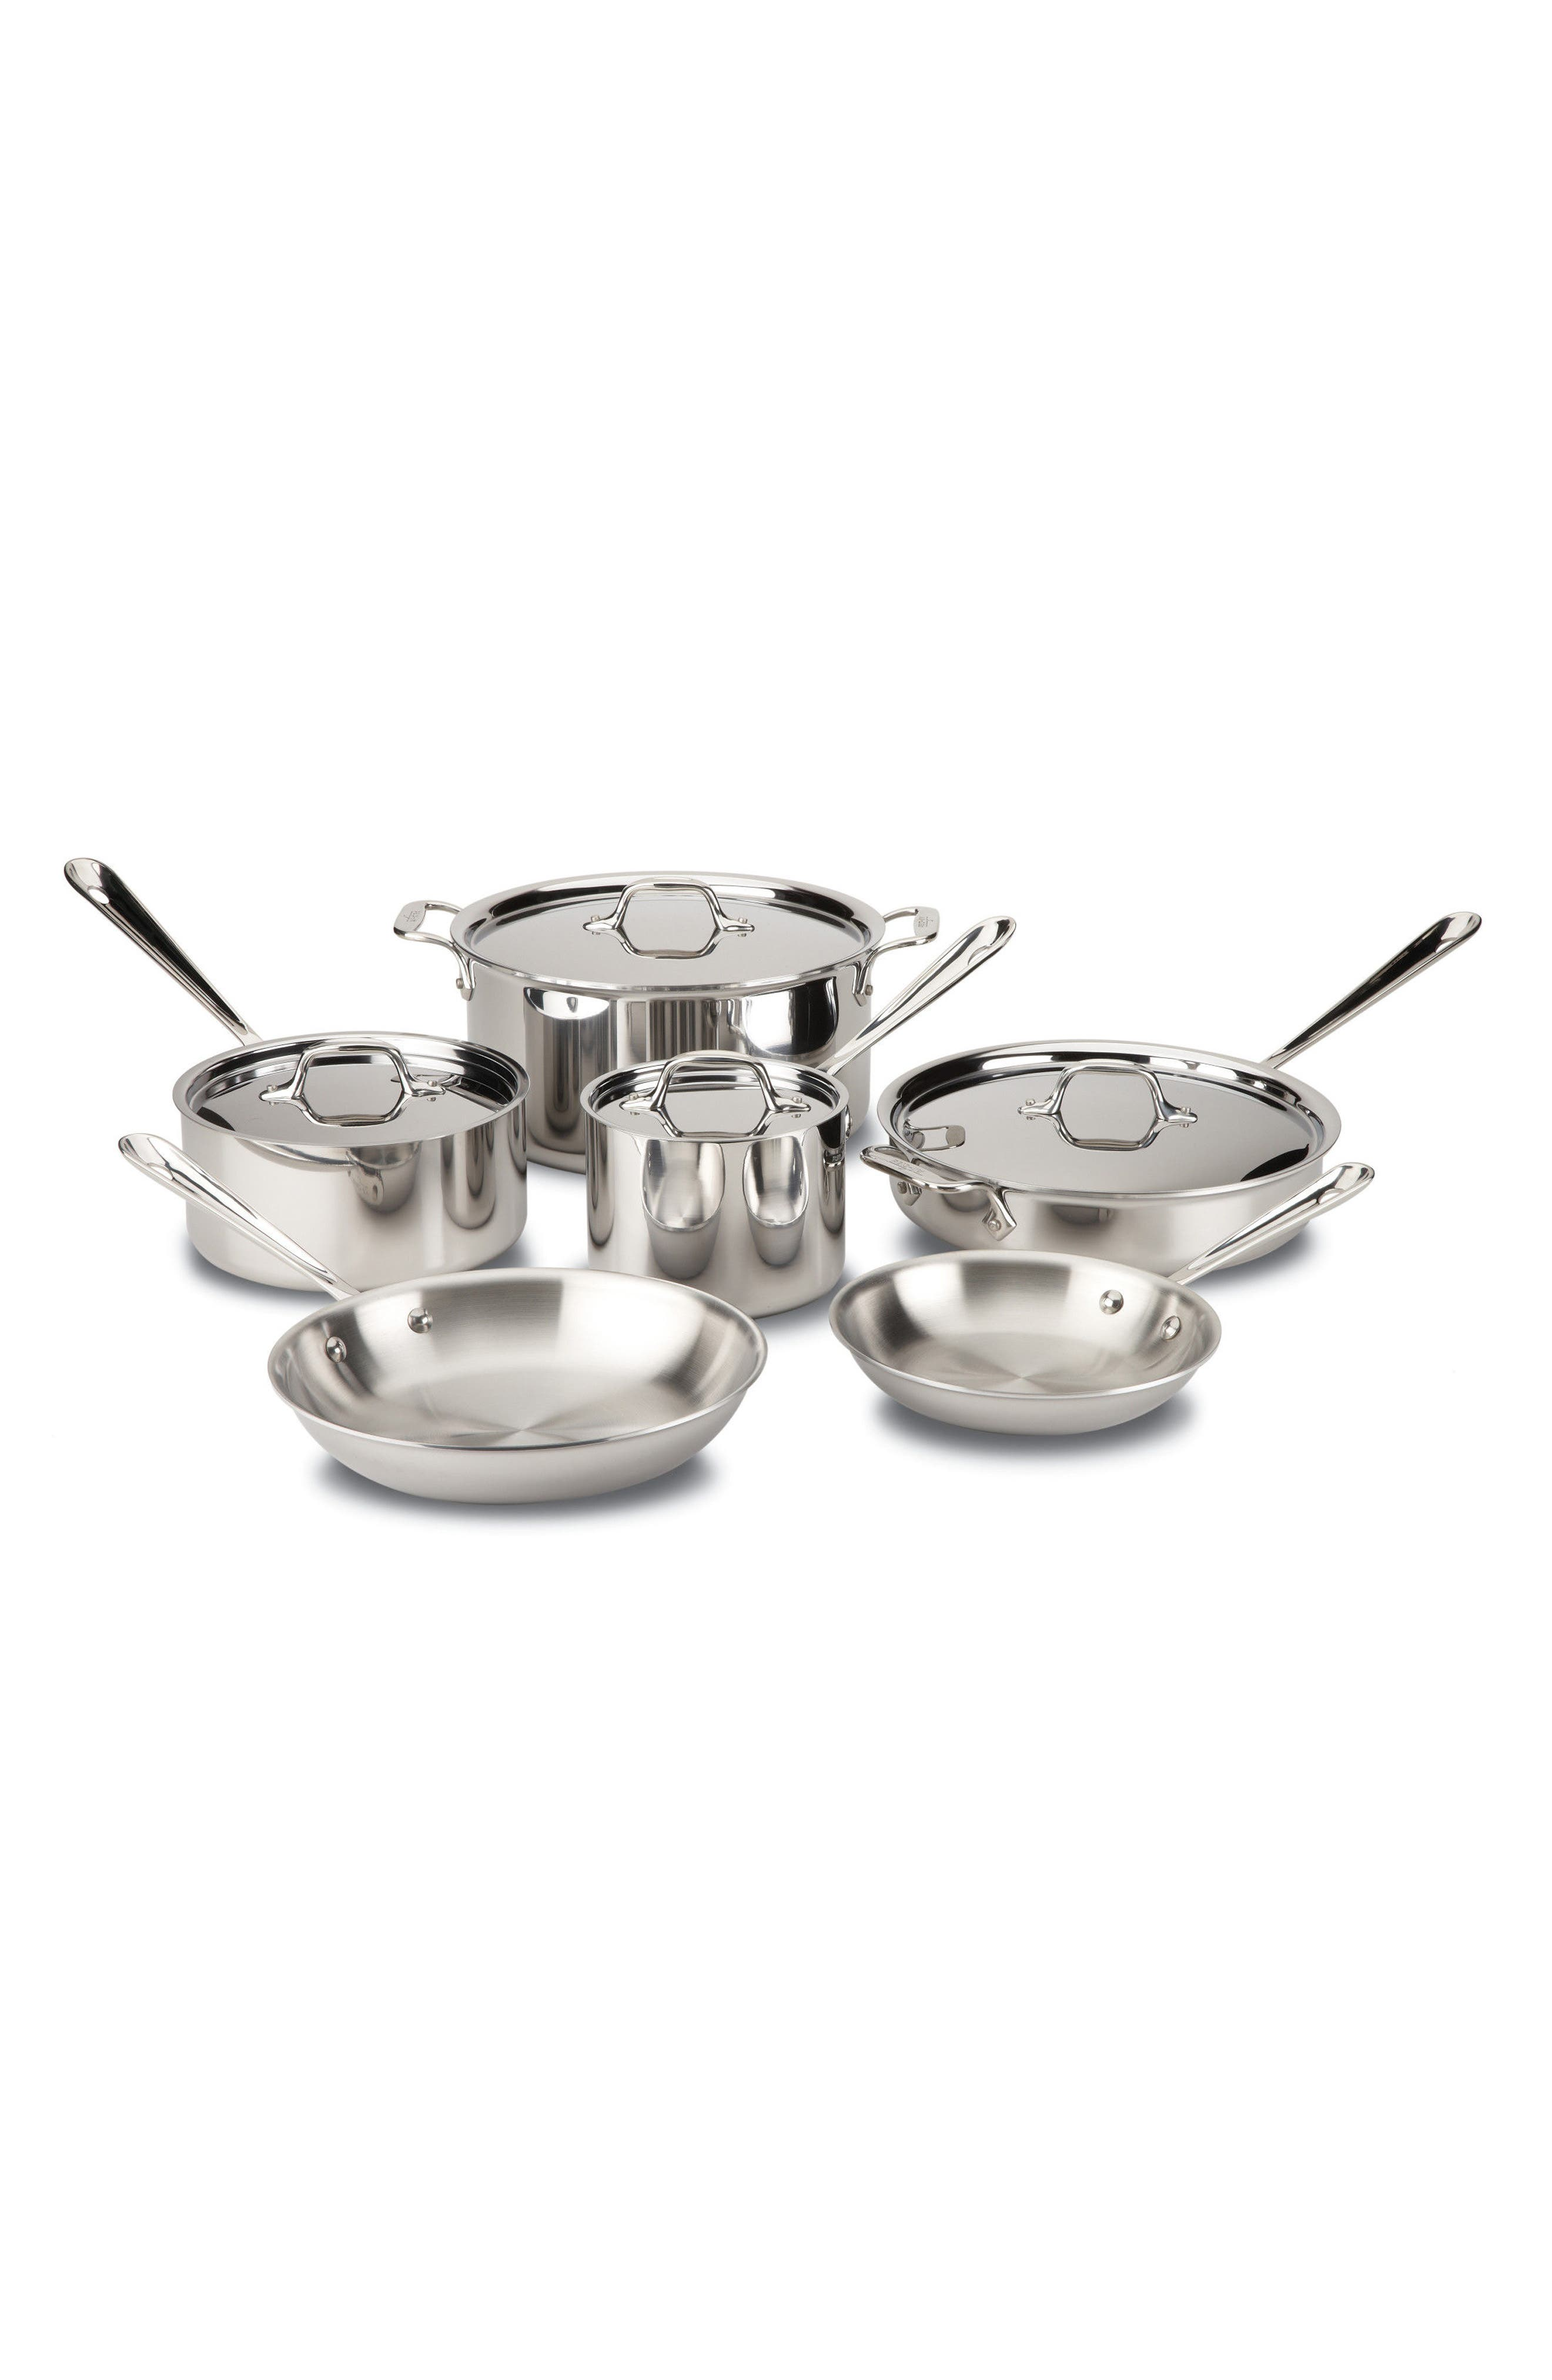 10-Piece Stainless Steel Cookware Set,                             Main thumbnail 1, color,                             STAINLESS